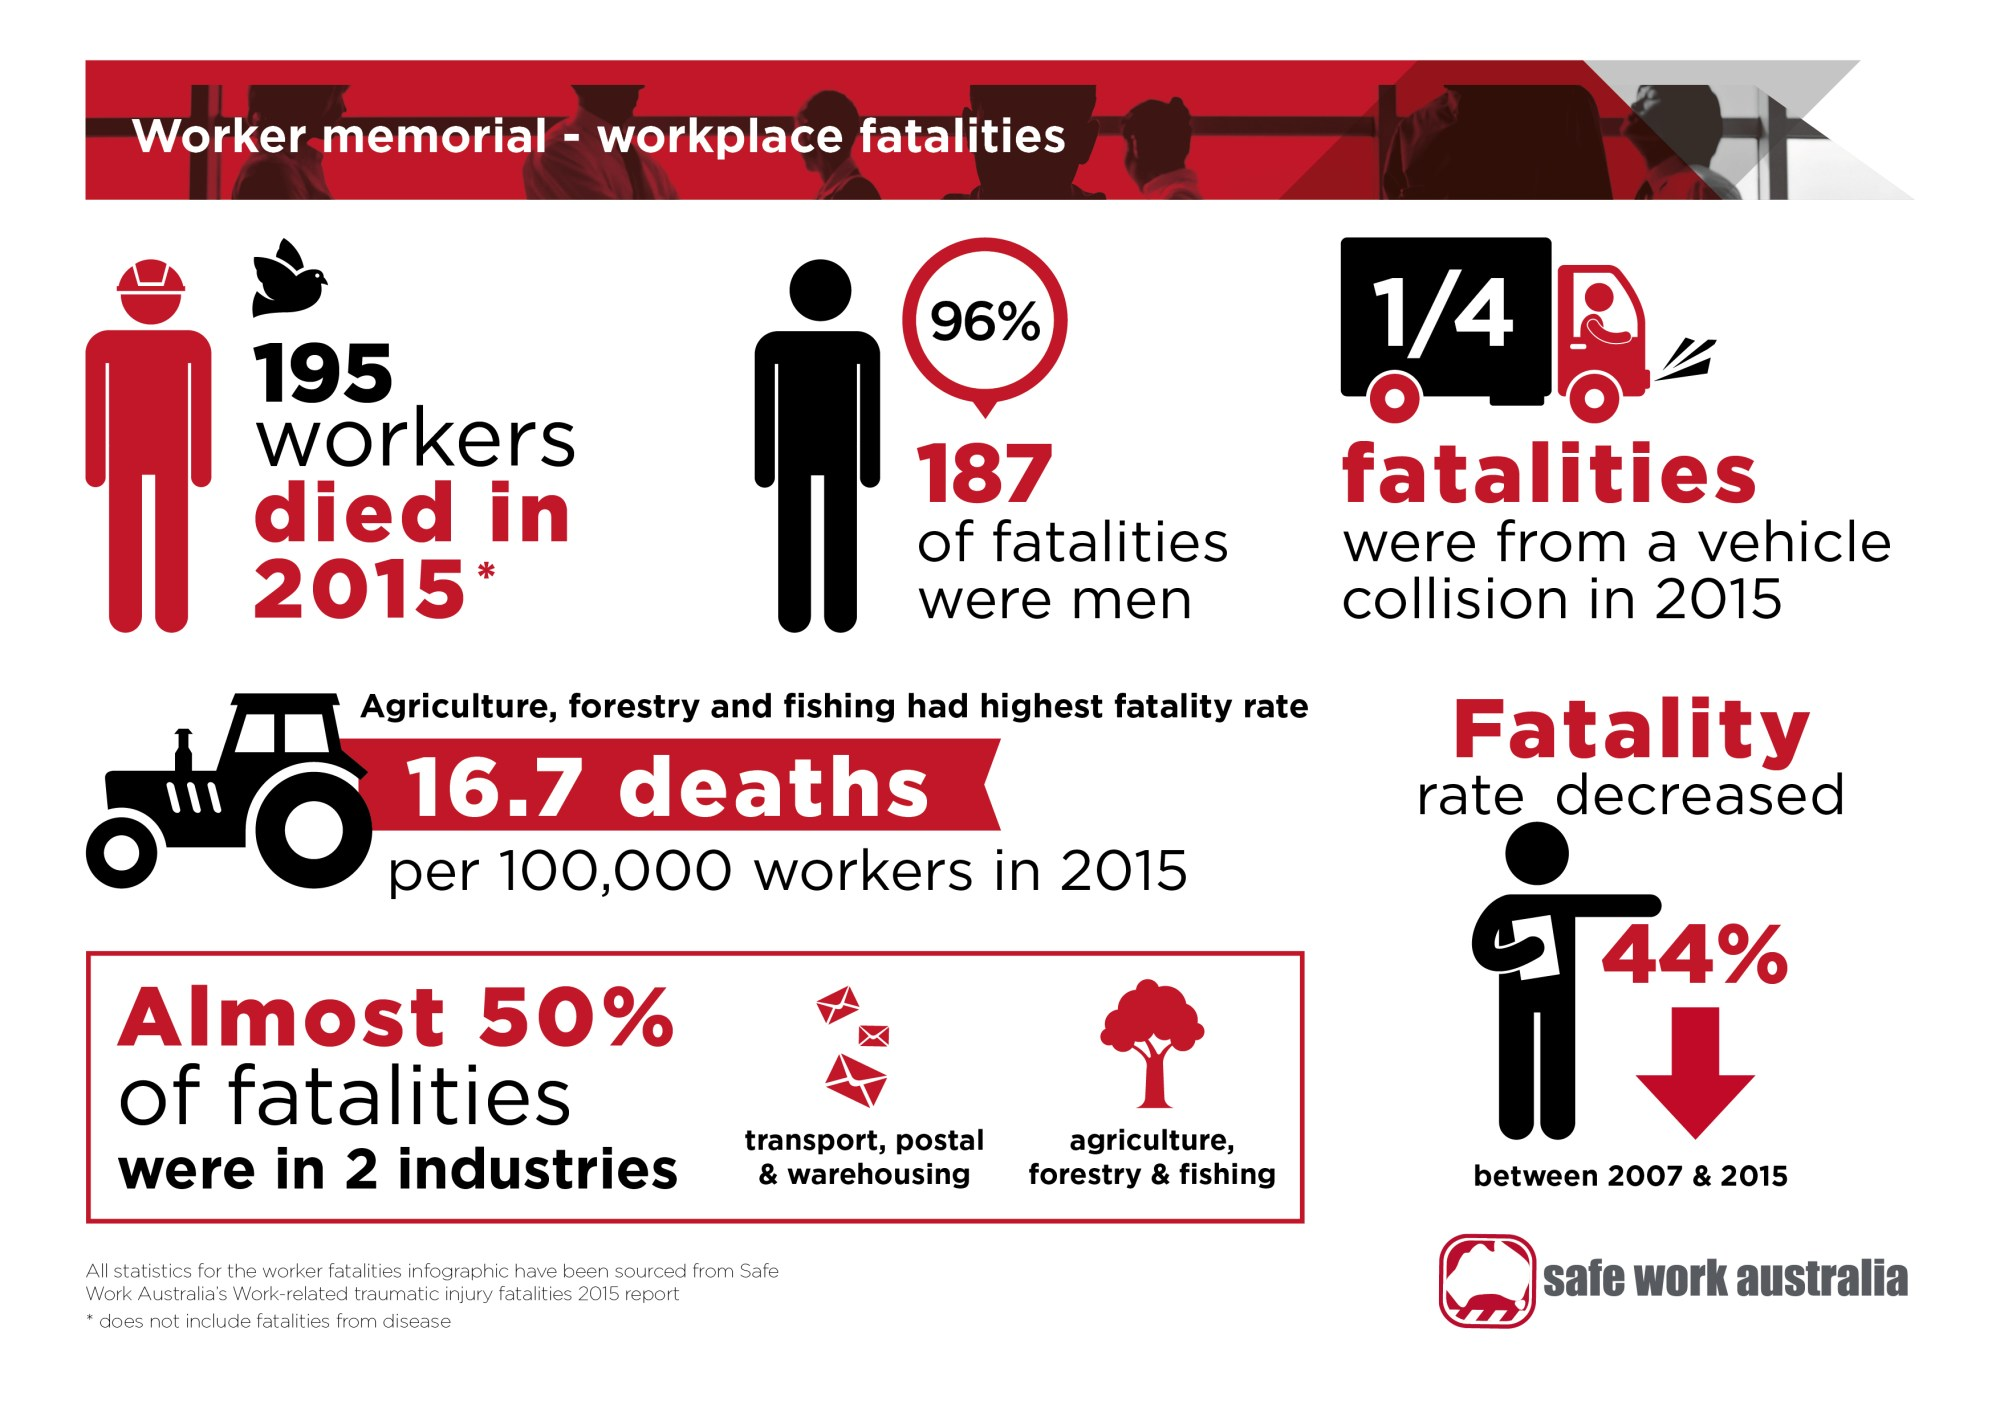 hight resolution of  worker memorial workplace fatalities as a jpg 1 14 mb